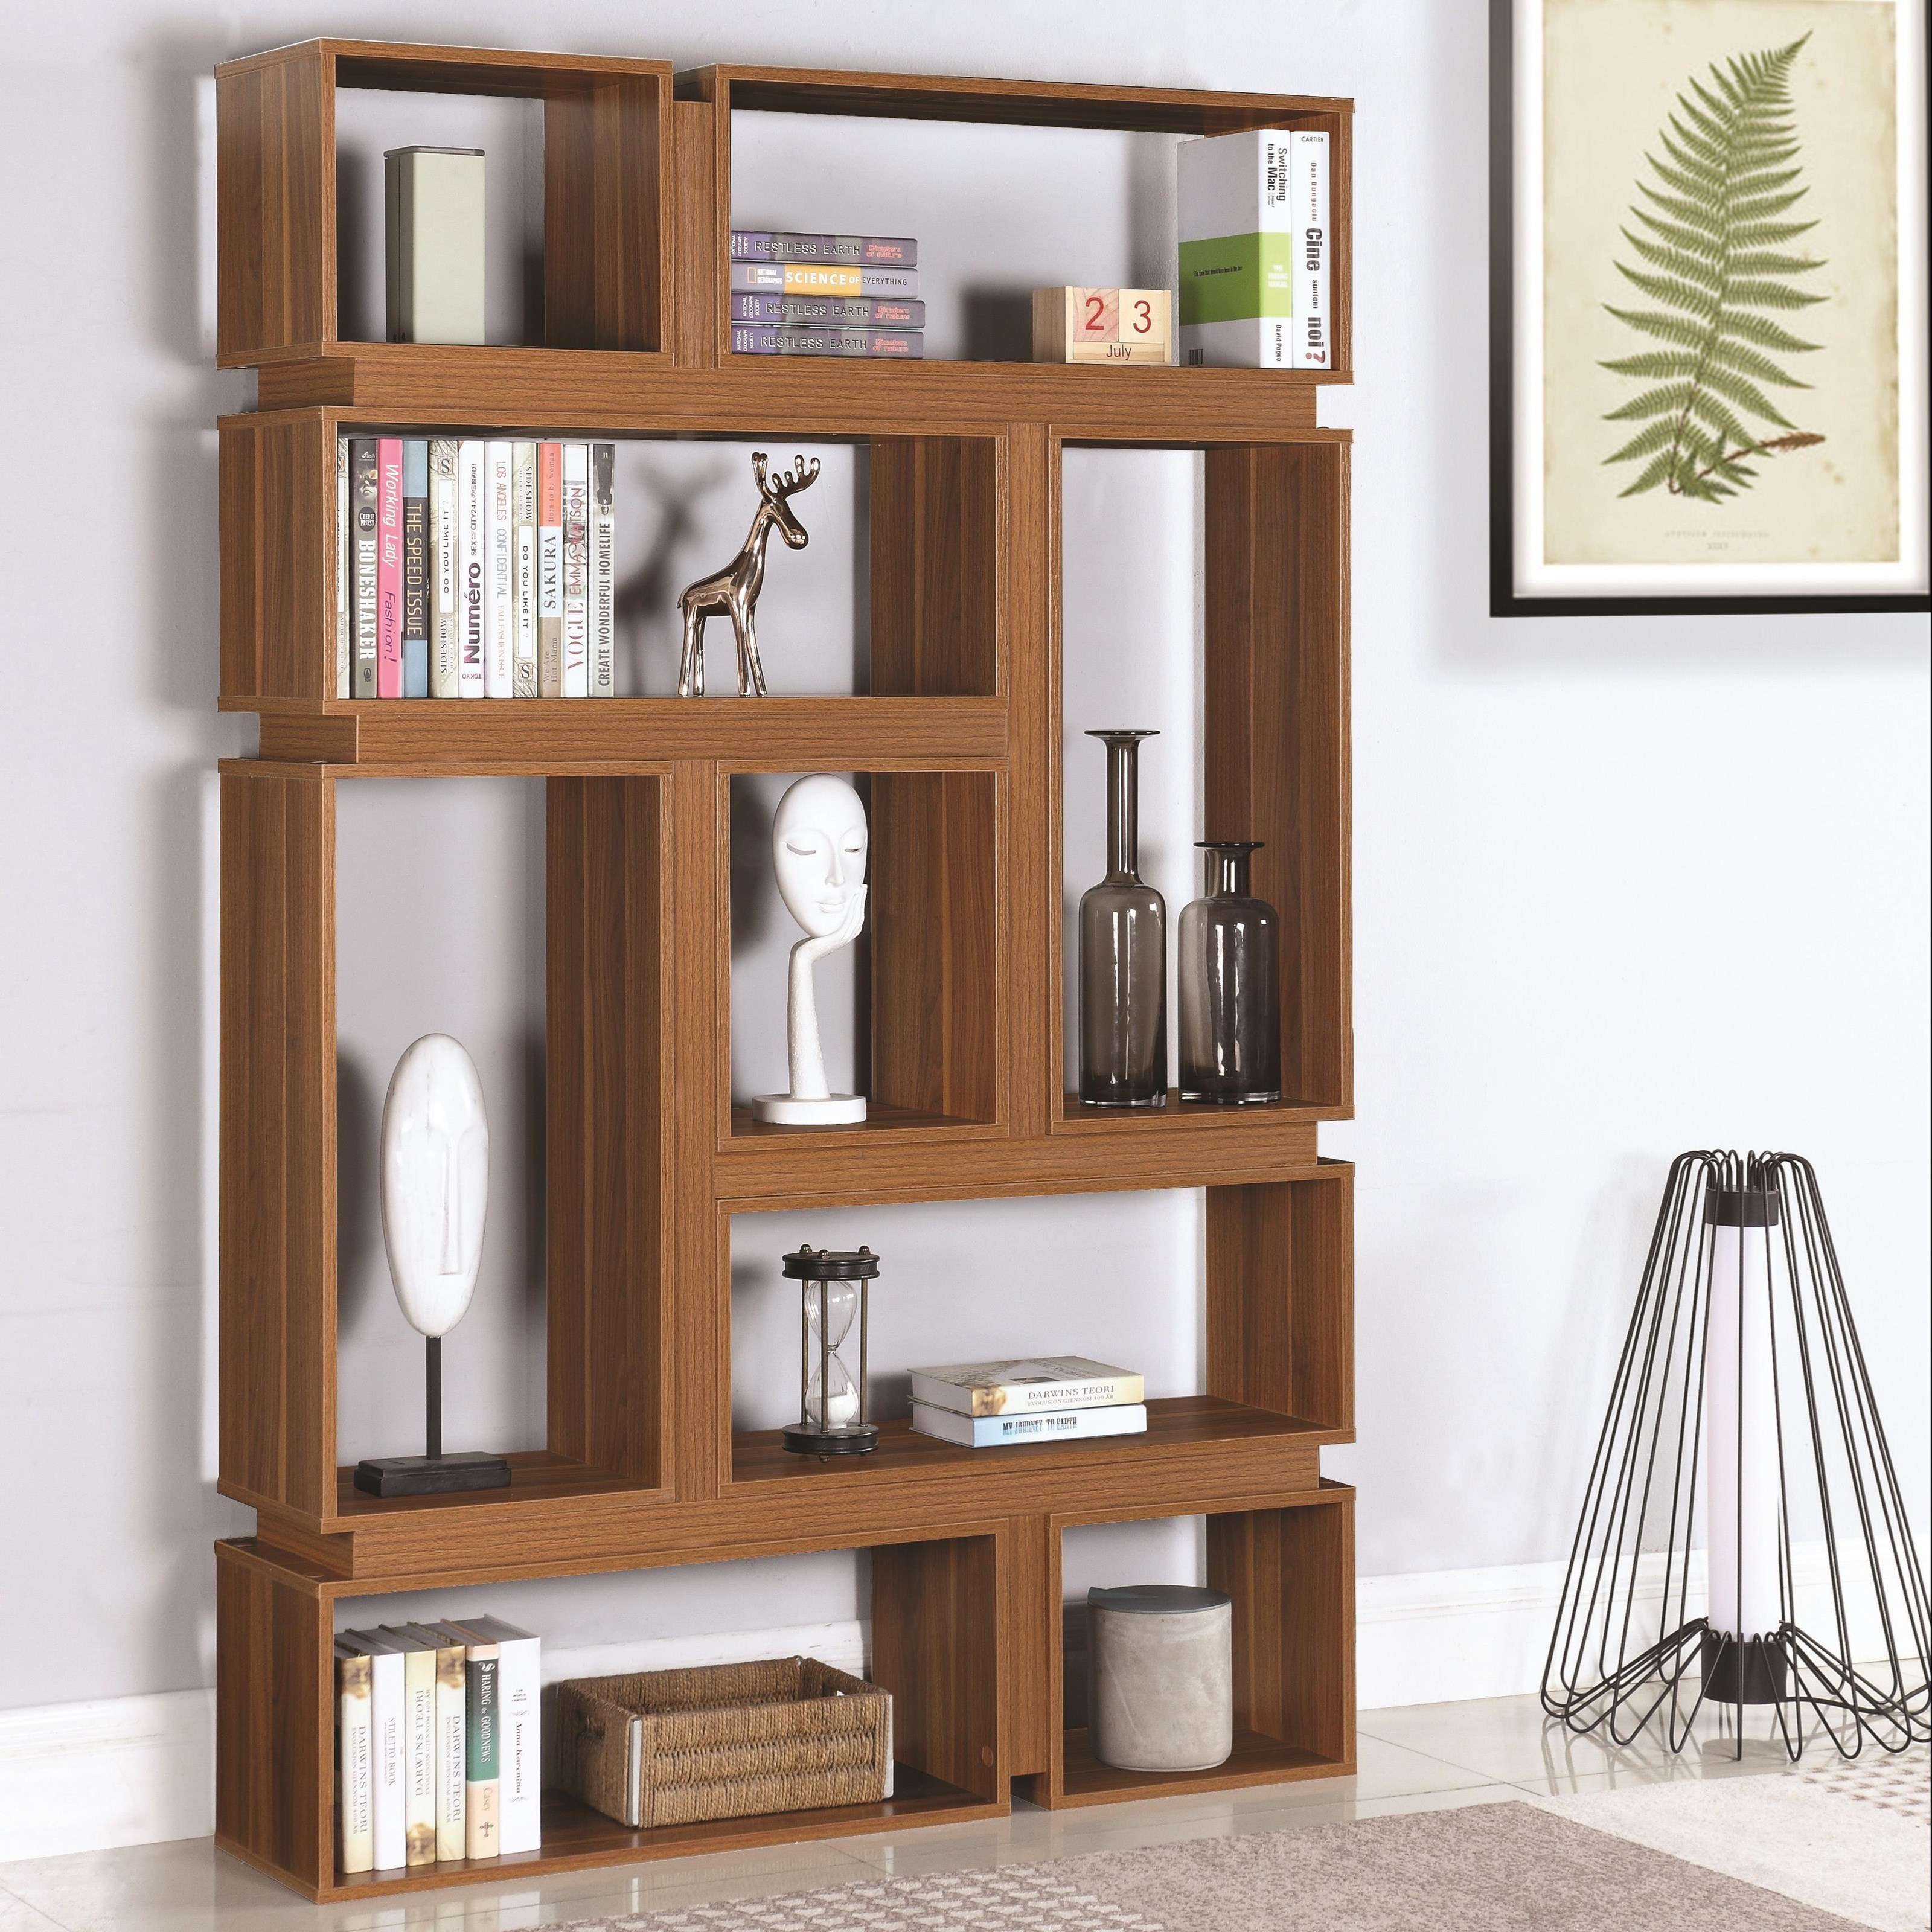 Coaster Bookcases Bookcase - Item Number: 801834